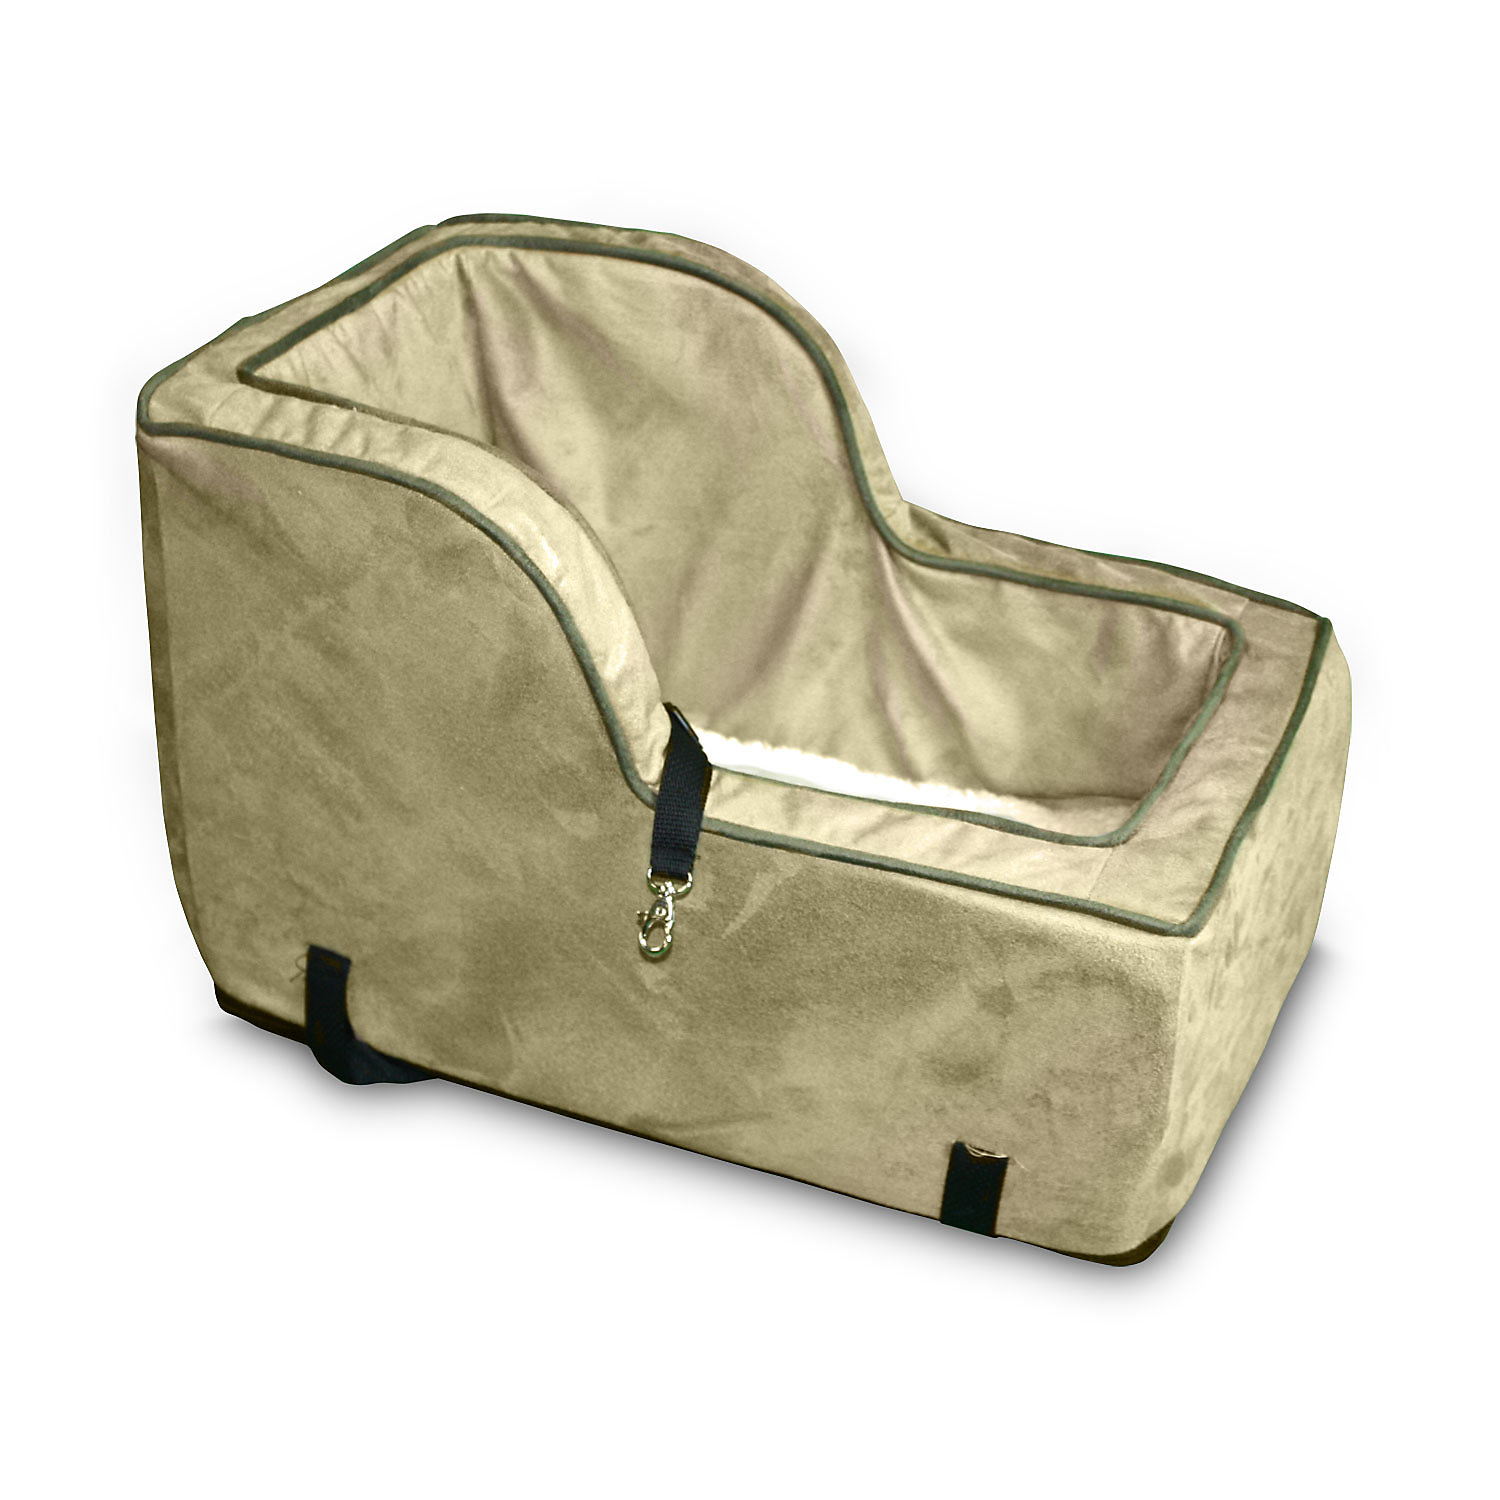 Snoozer Luxury HighBack Console in Camel Large Brown